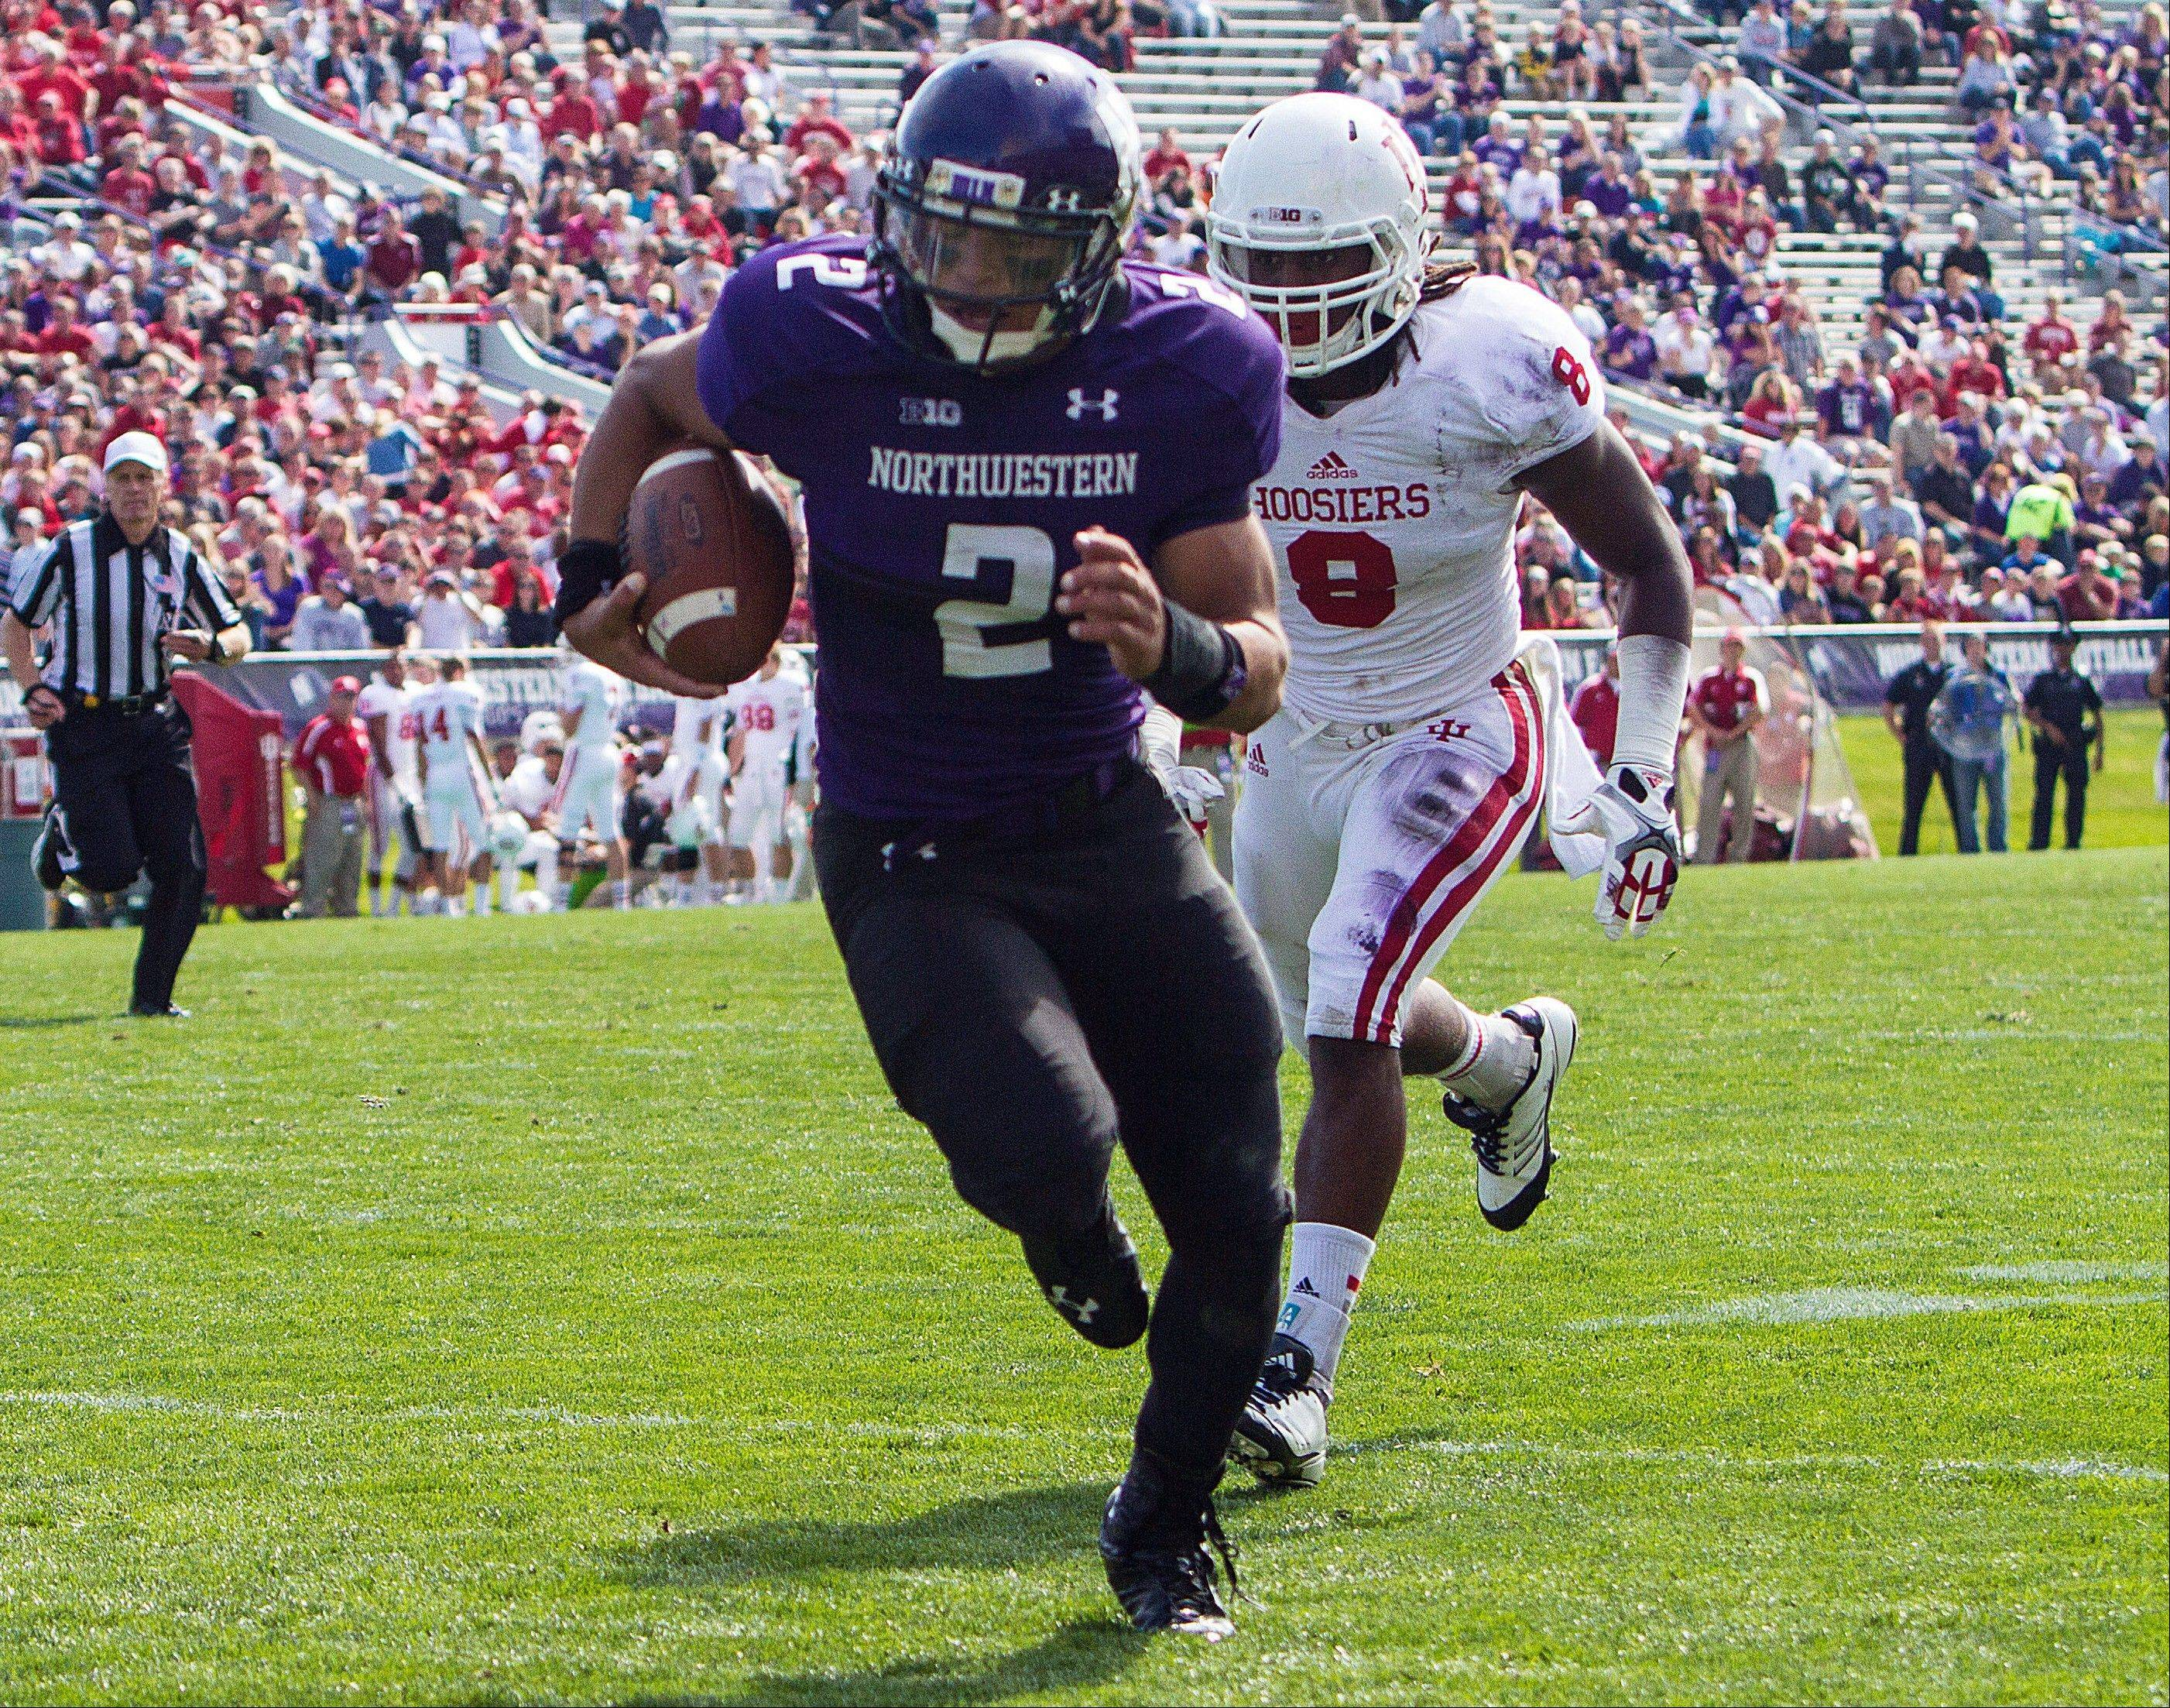 Colter leads Northwestern past Indiana 44-29